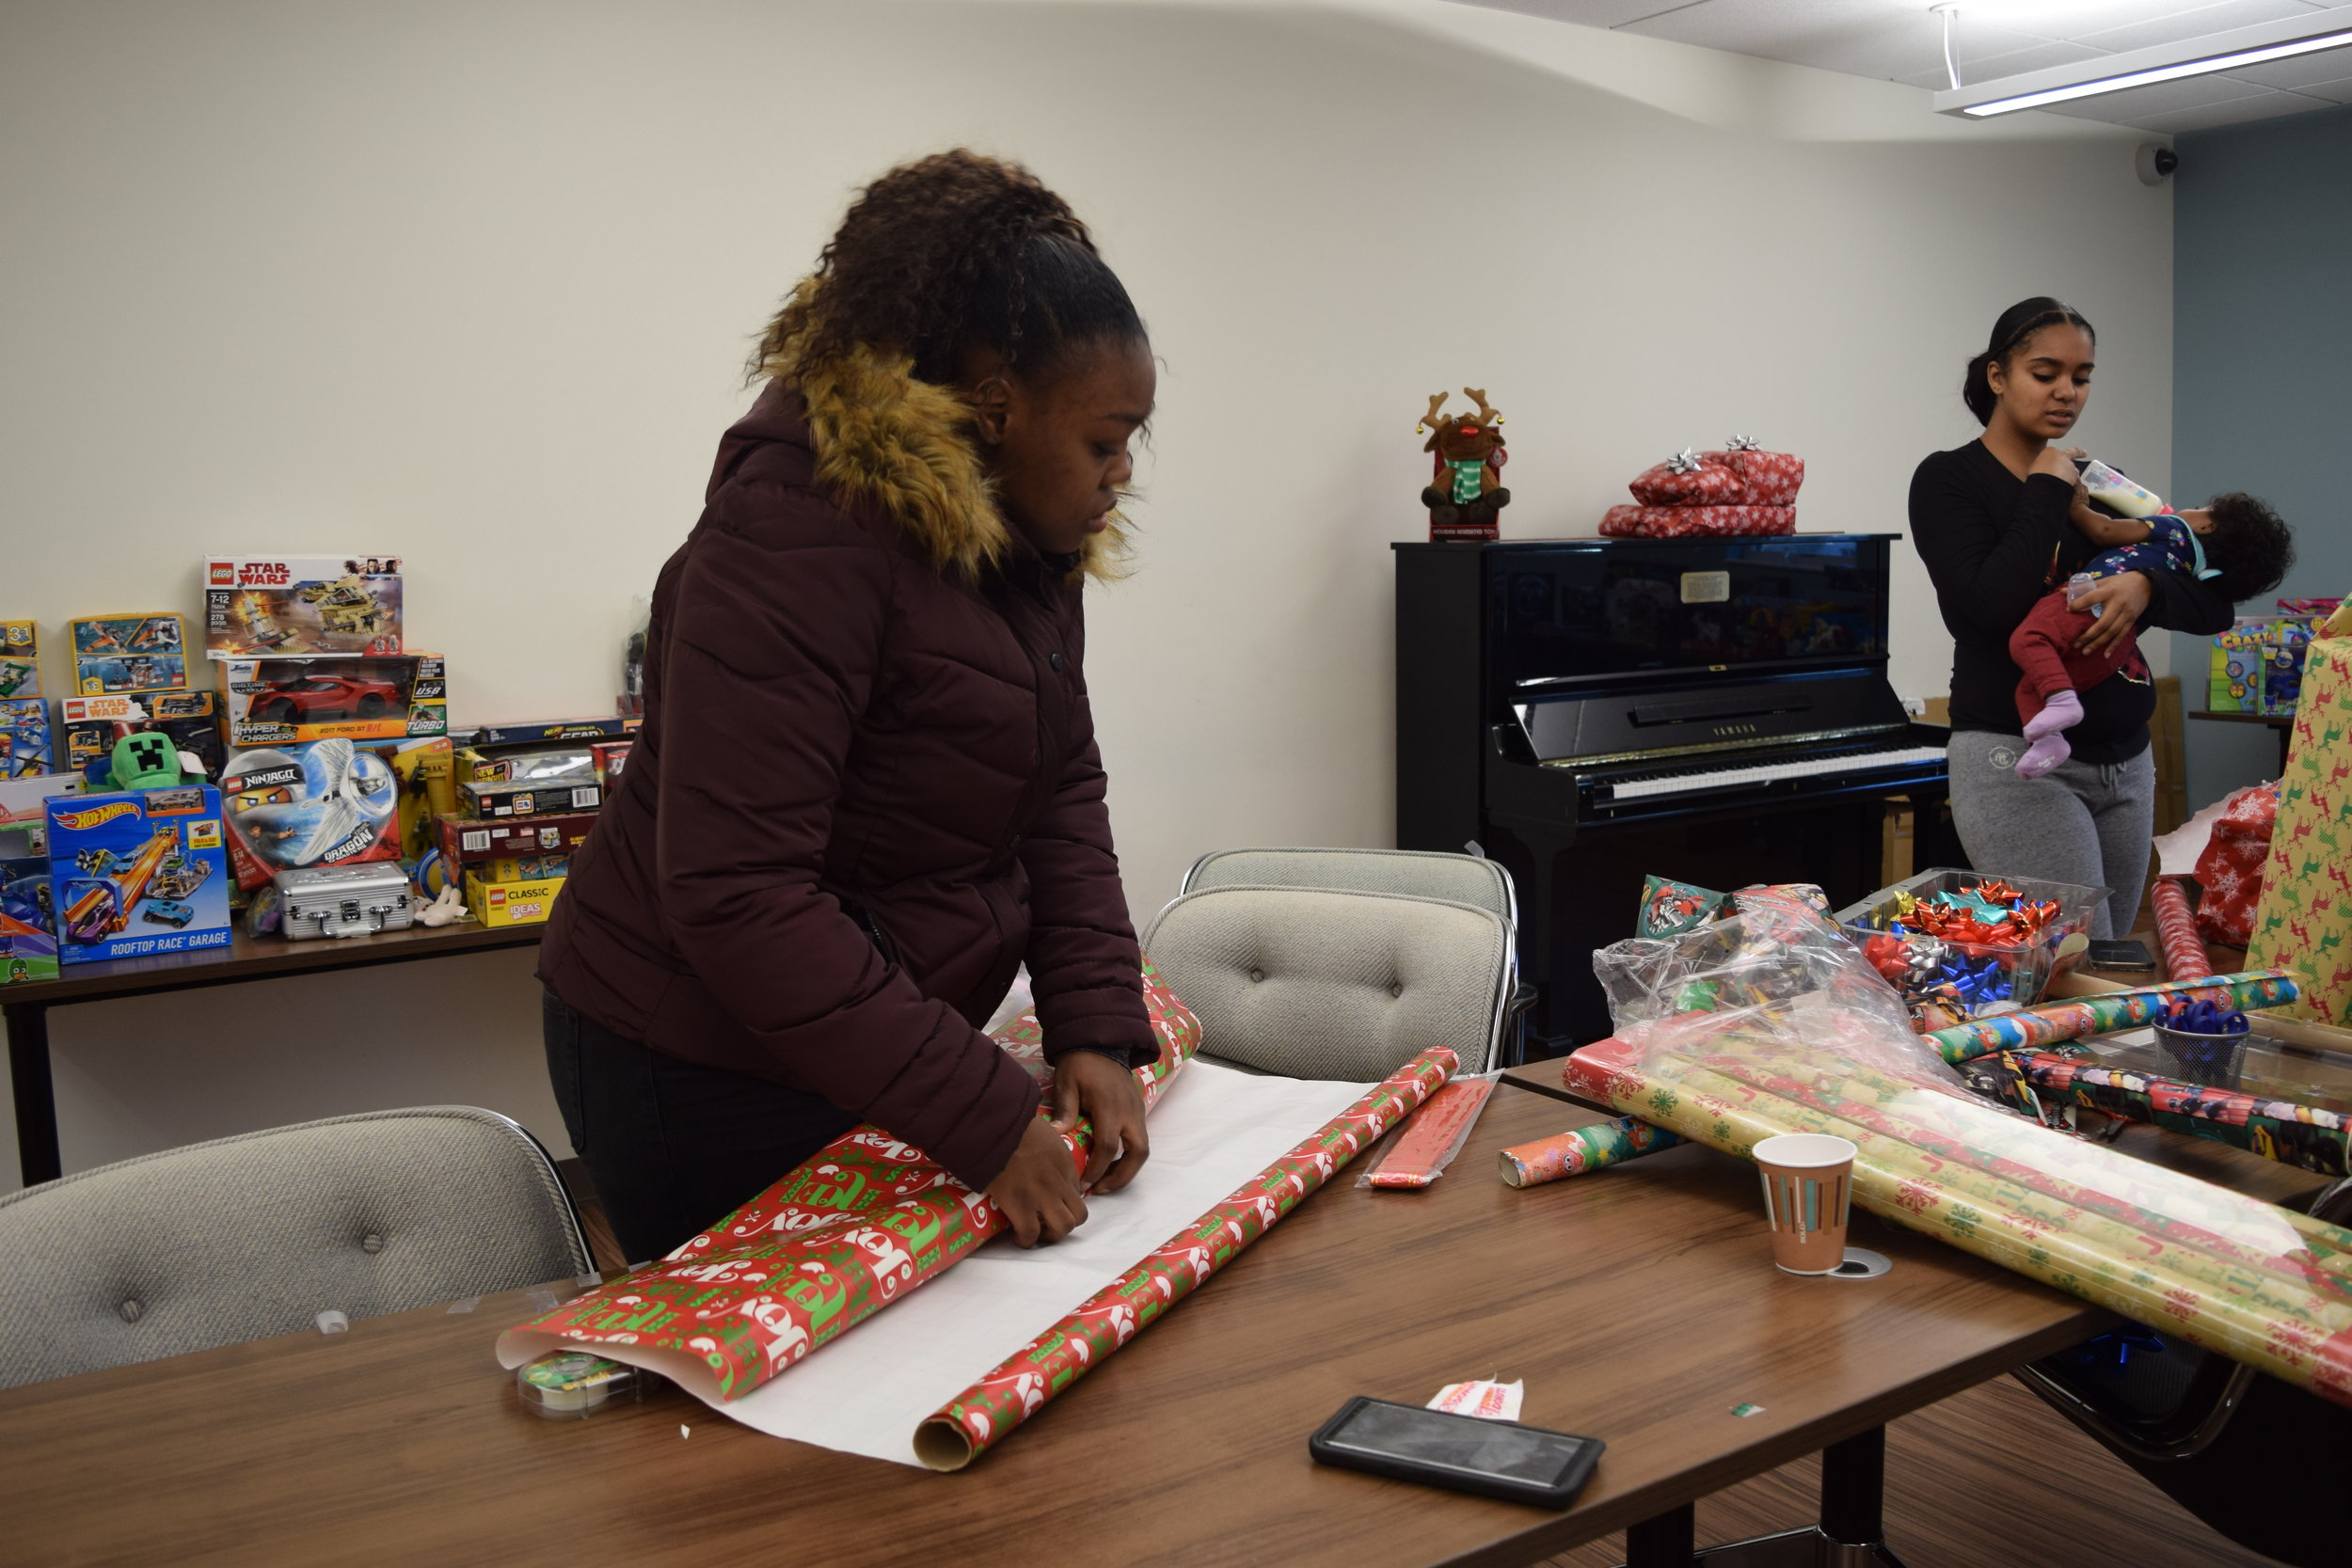 Teaka wrapping gifts for her family